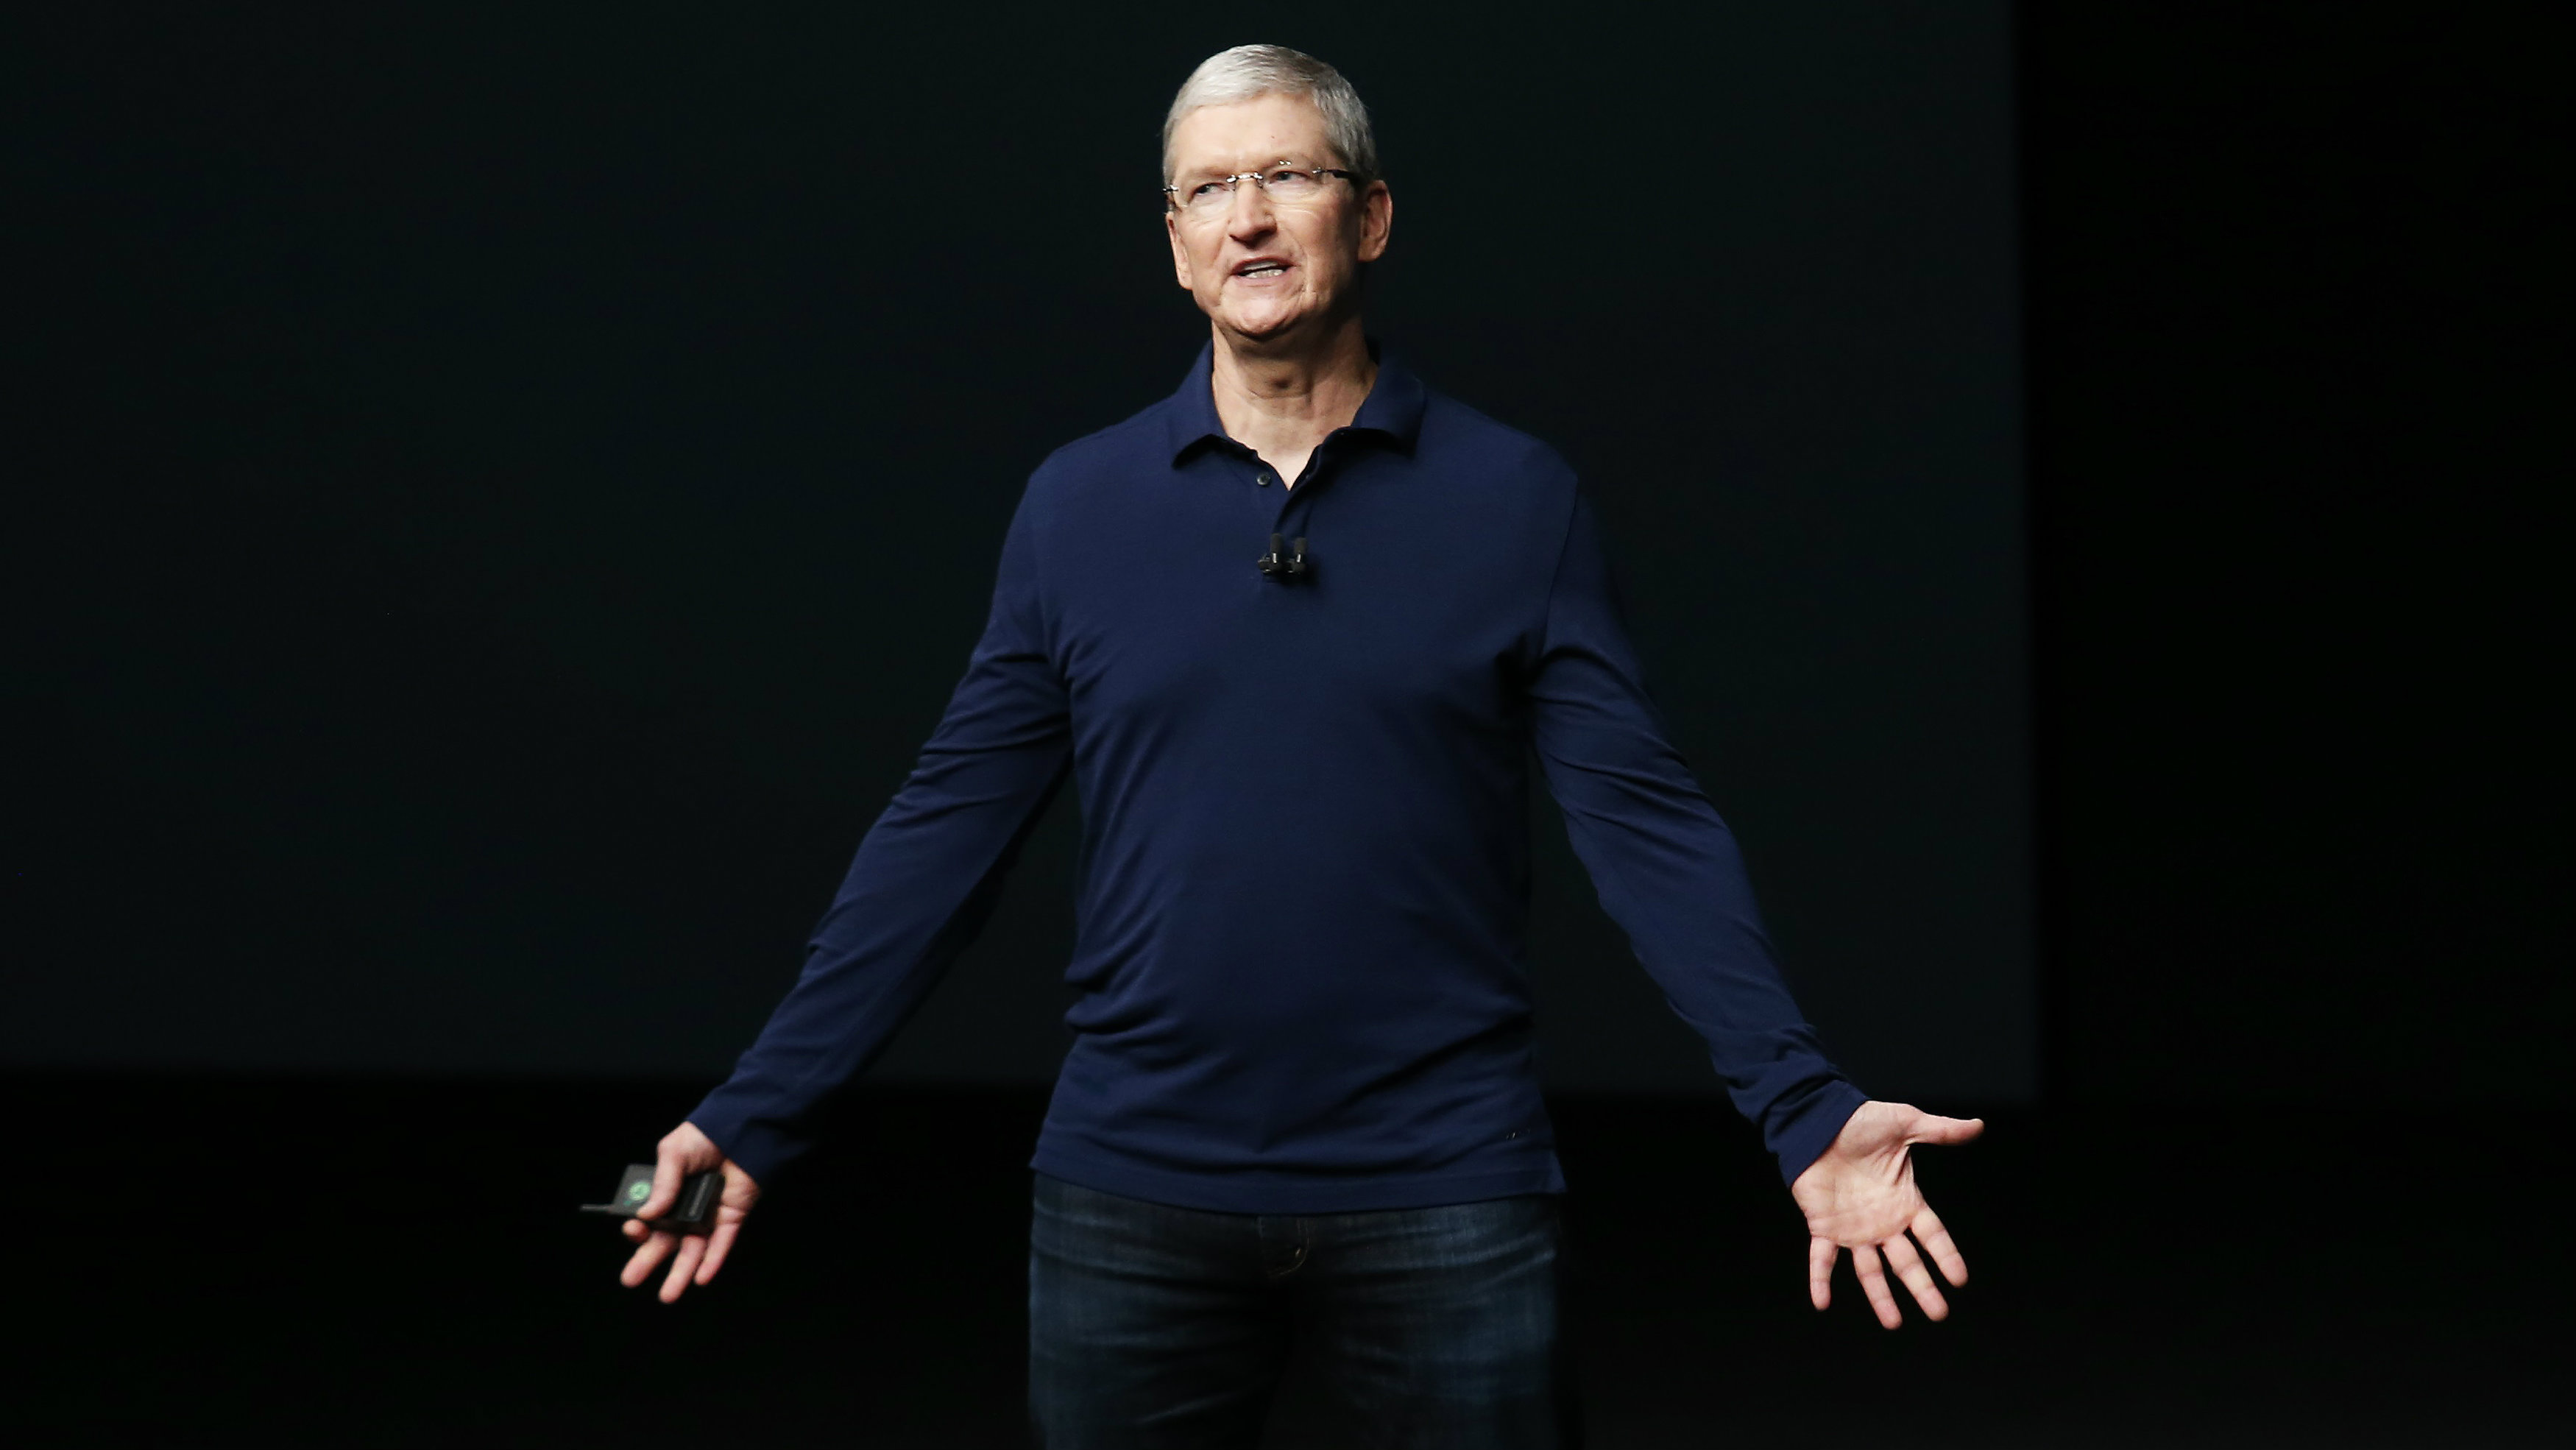 Apple Inc CEO Tim Cook makes his closing remarks during an Apple media event in San Francisco, California,